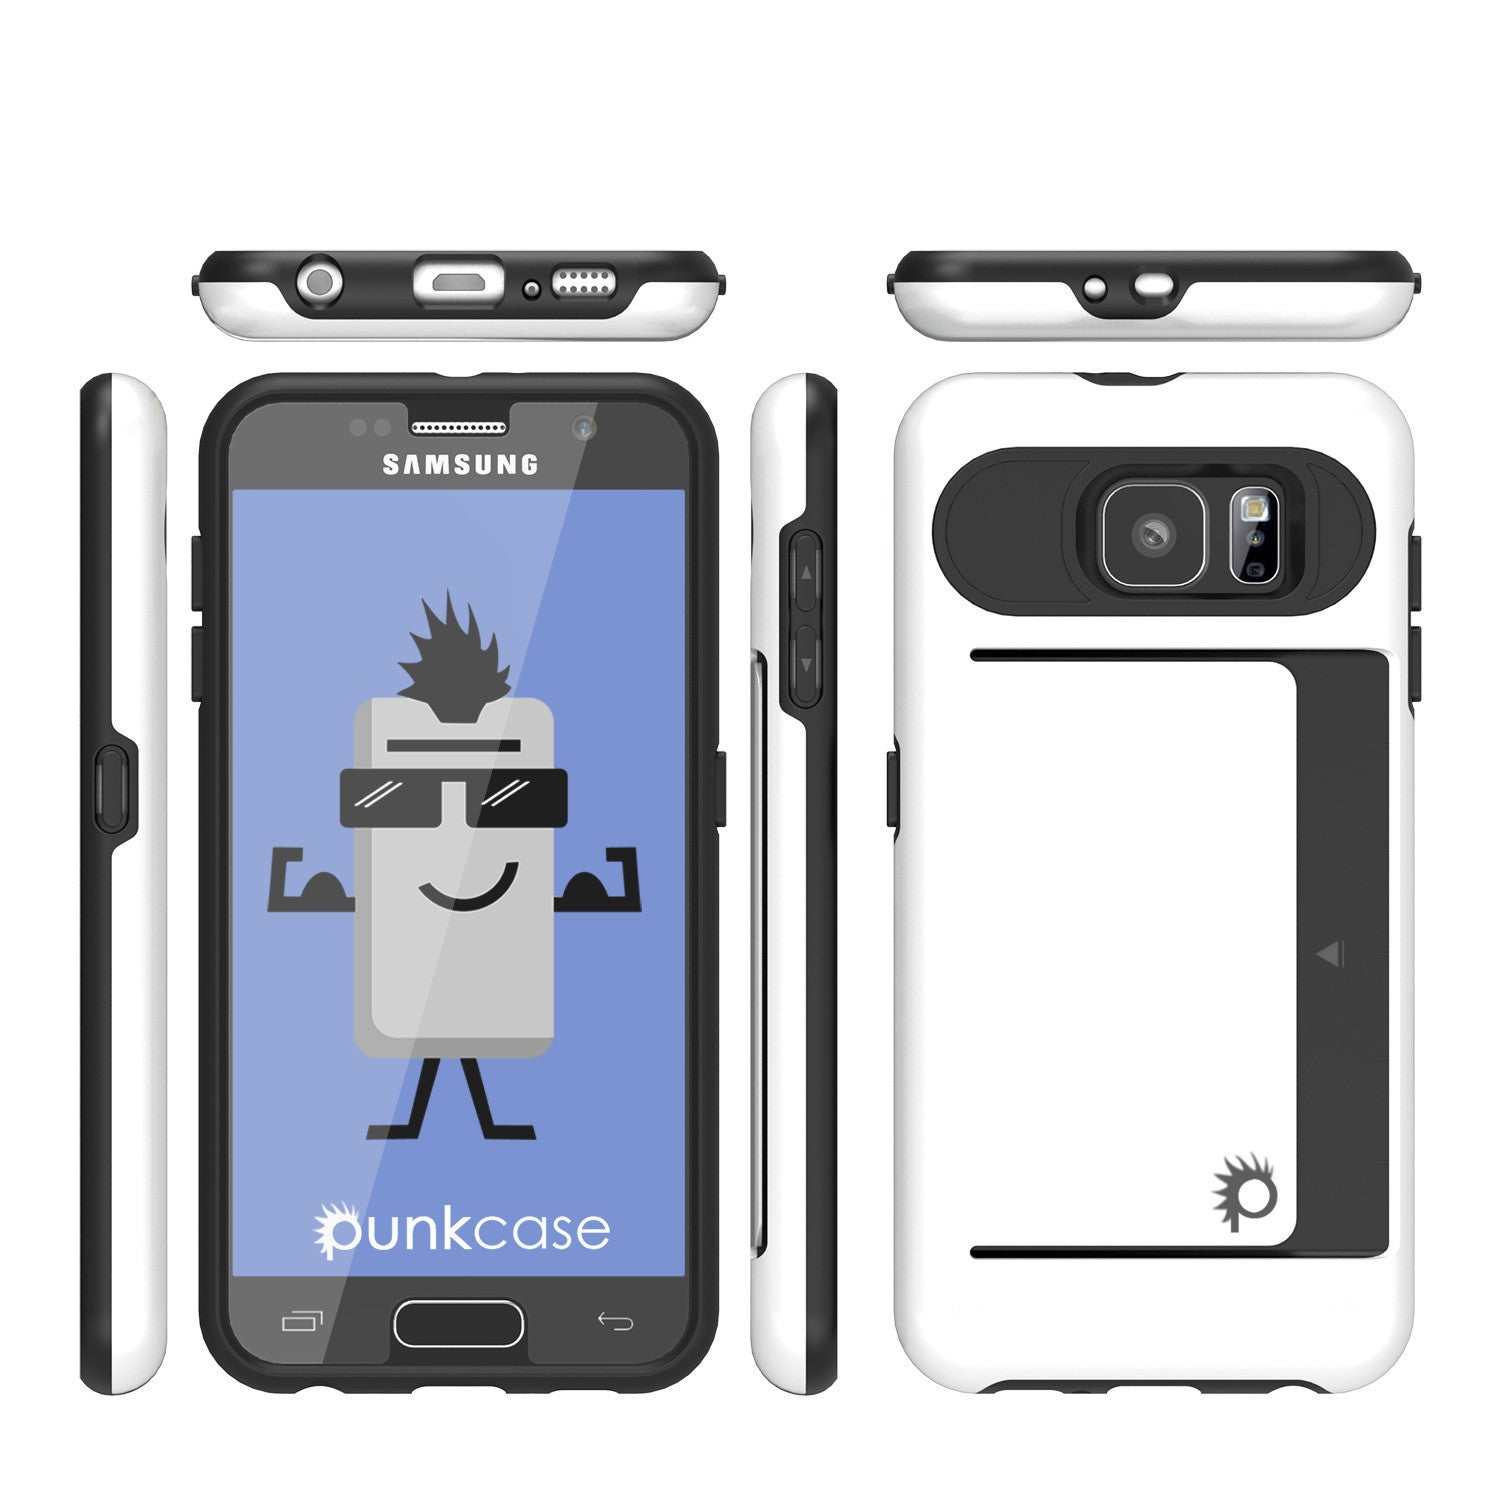 Galaxy S6 EDGE Case PunkCase CLUTCH White Series Slim Armor Soft Cover Case w/ Screen Protector